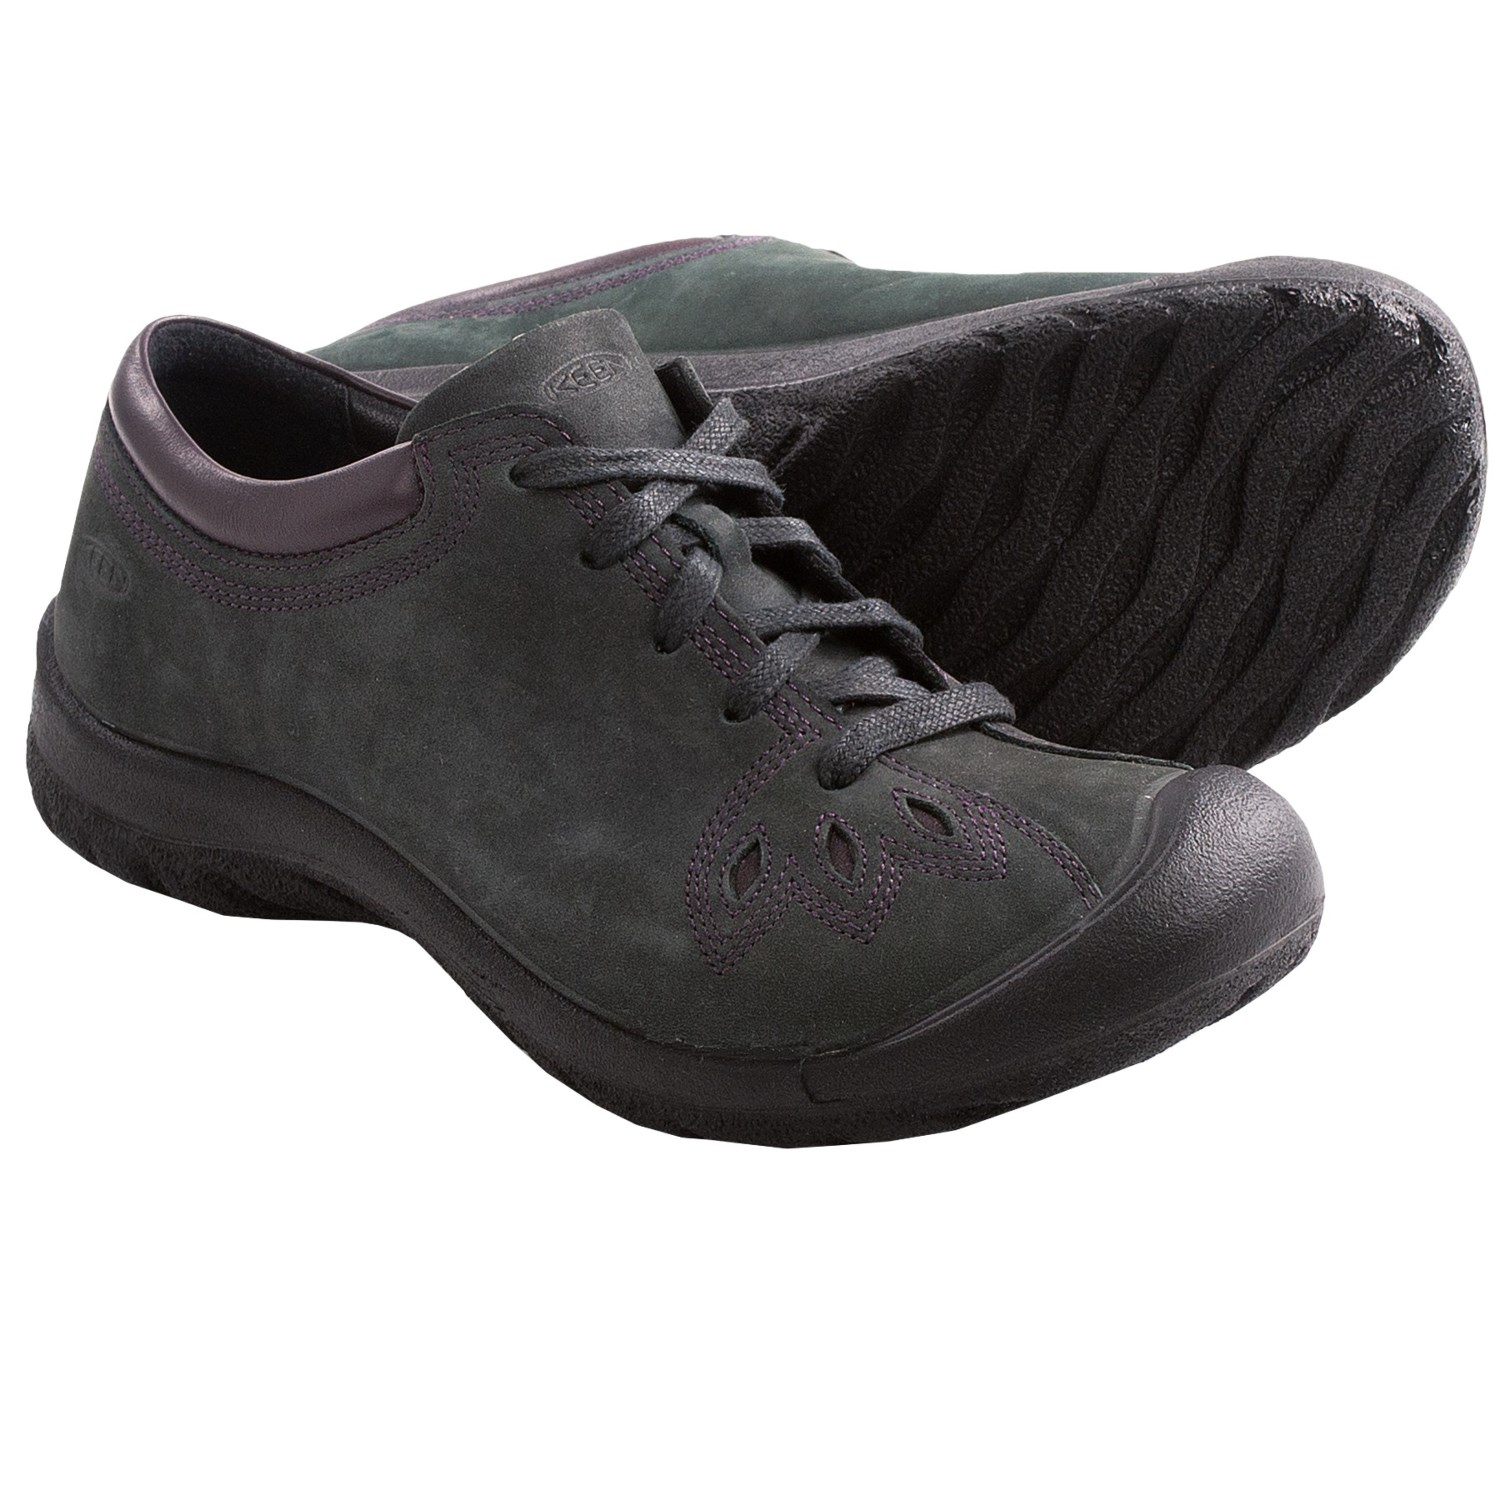 Compare Business Casual Shoes For Women Prices | Buy Cheapest